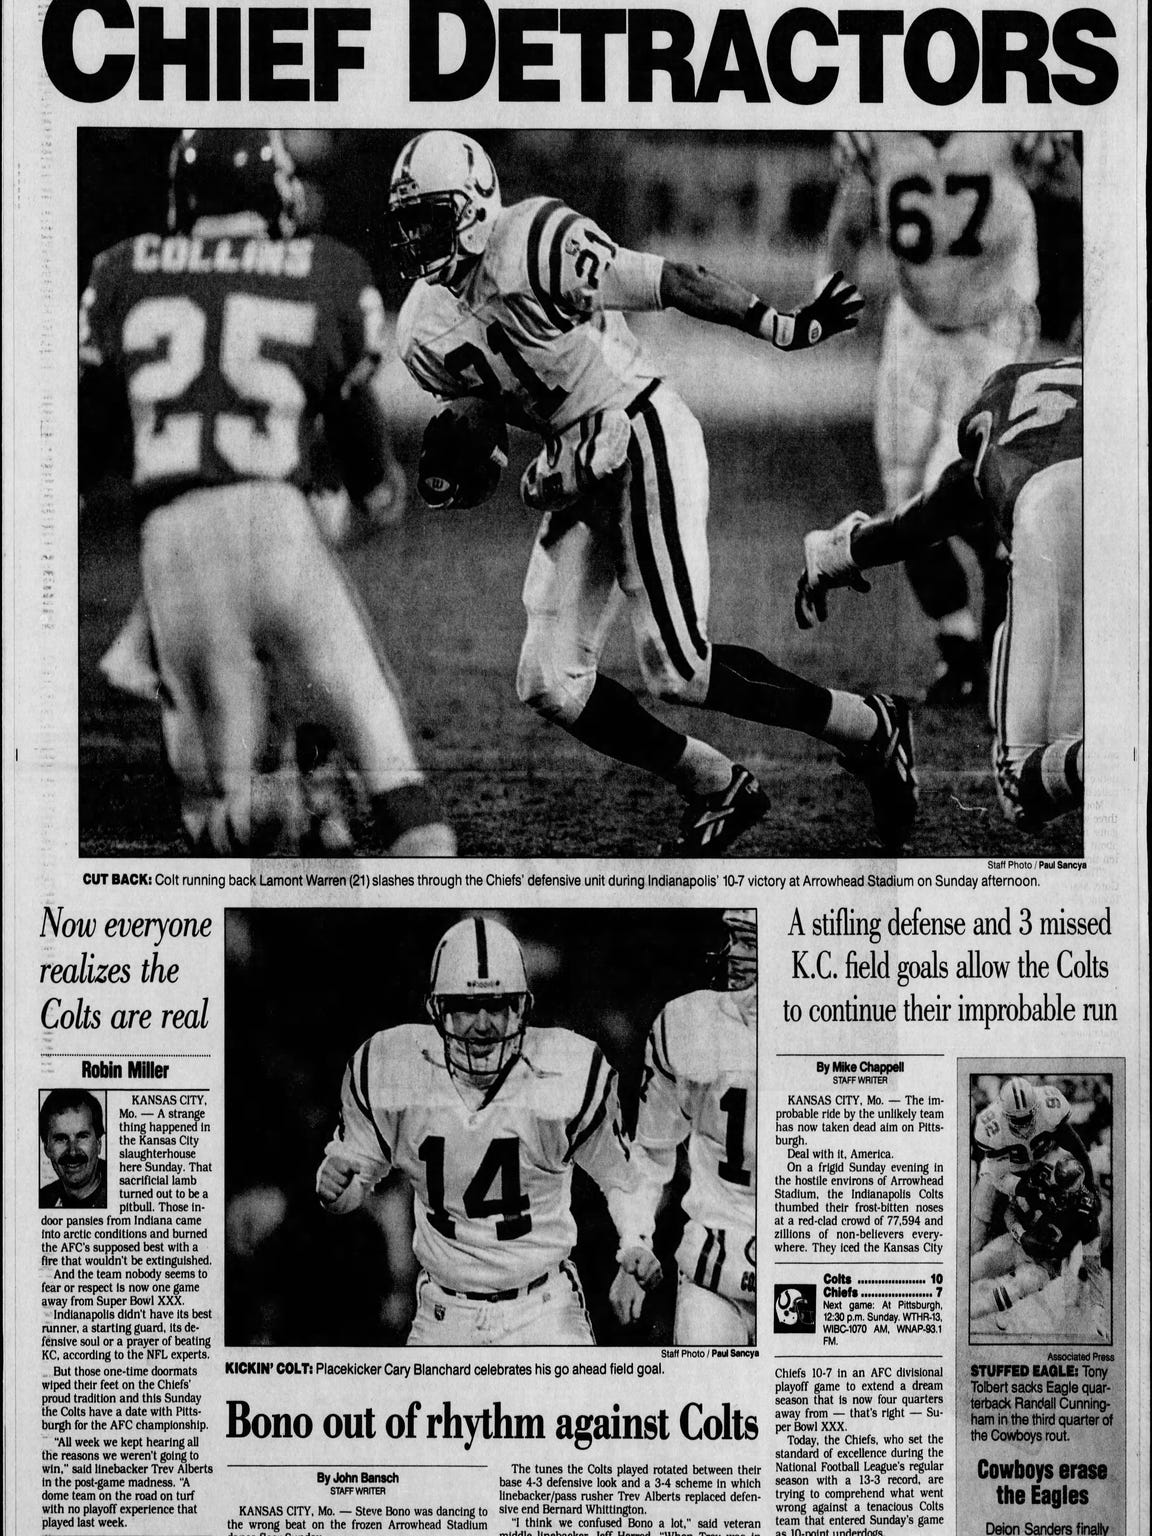 Indianapolis Star's Sports front after the Colts upset Kansas City in the 1995 postseason